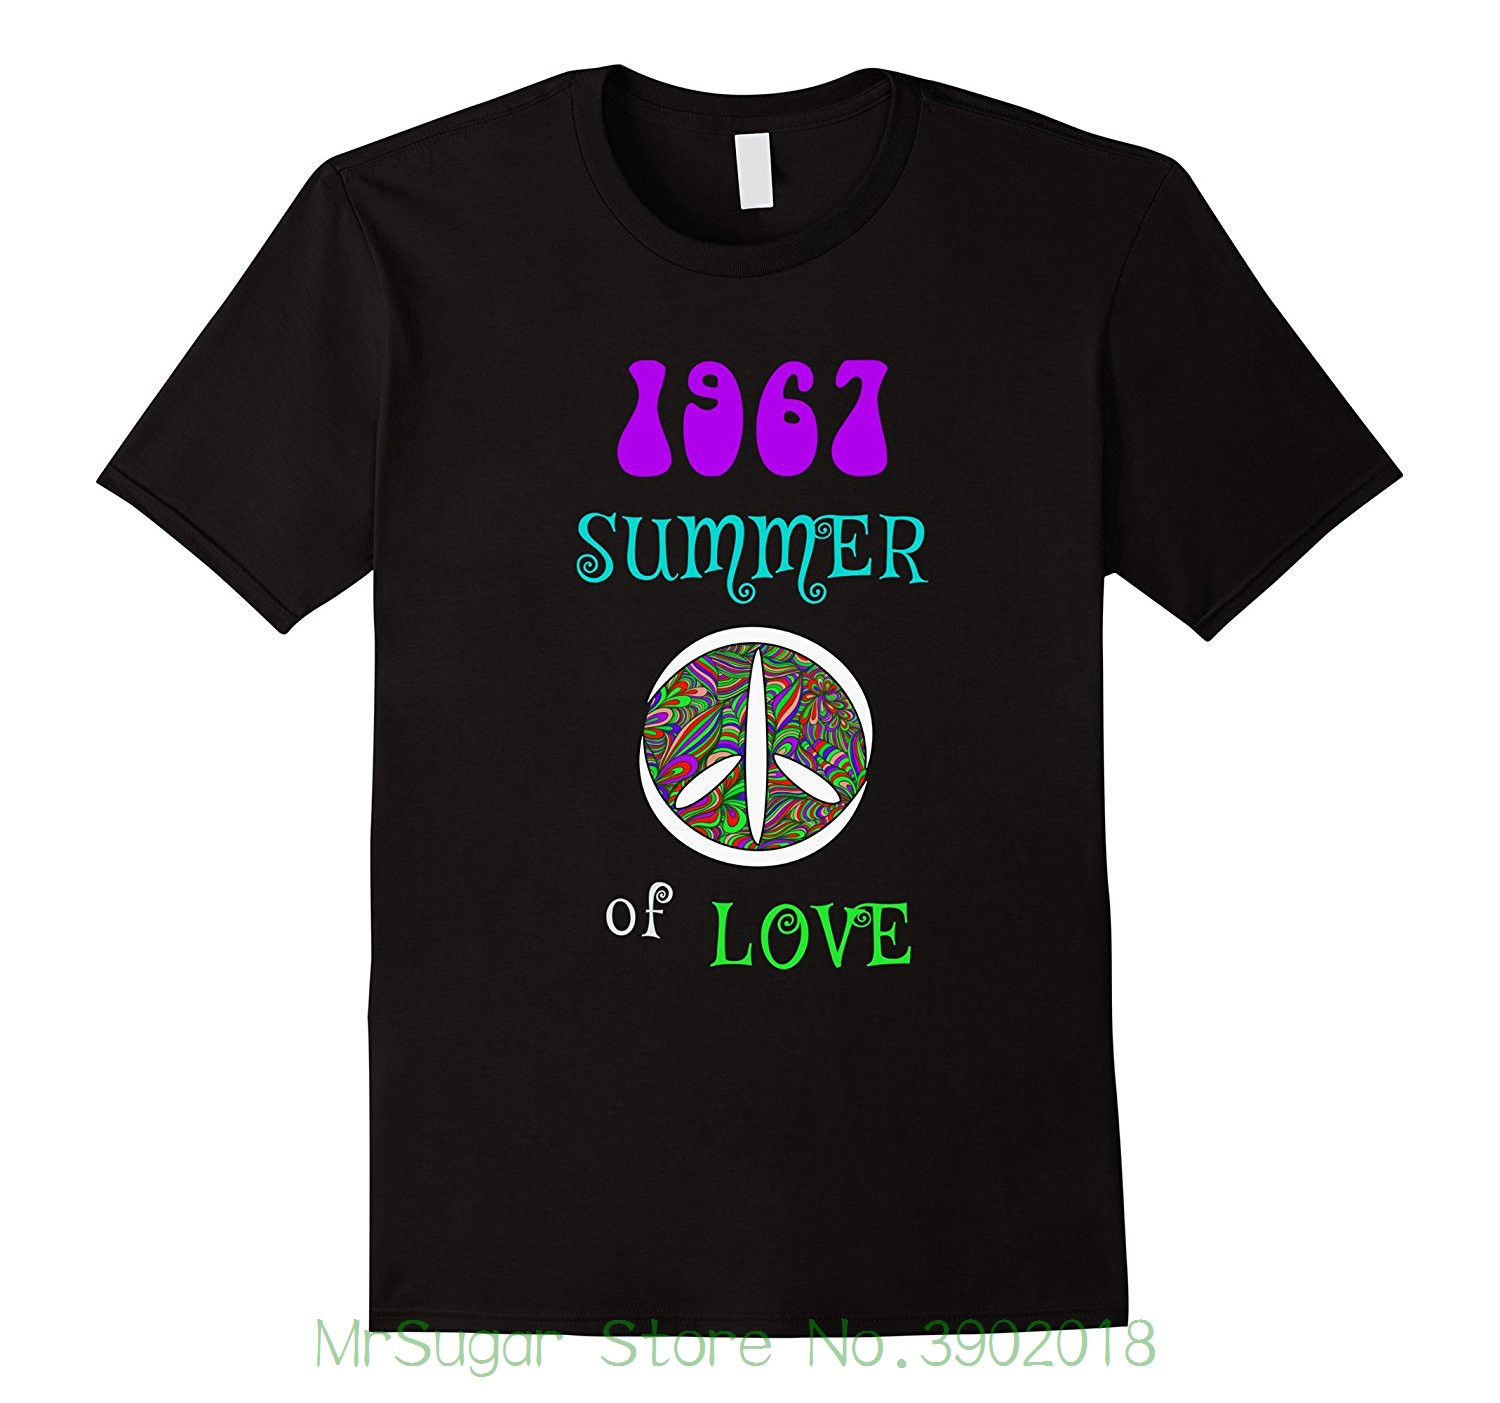 1967 Summer Of Love Hippie Peace Sign T-shirt Printed Summer Style Tees Male Harajuku Top Fitness Brand Clothing t shirt men